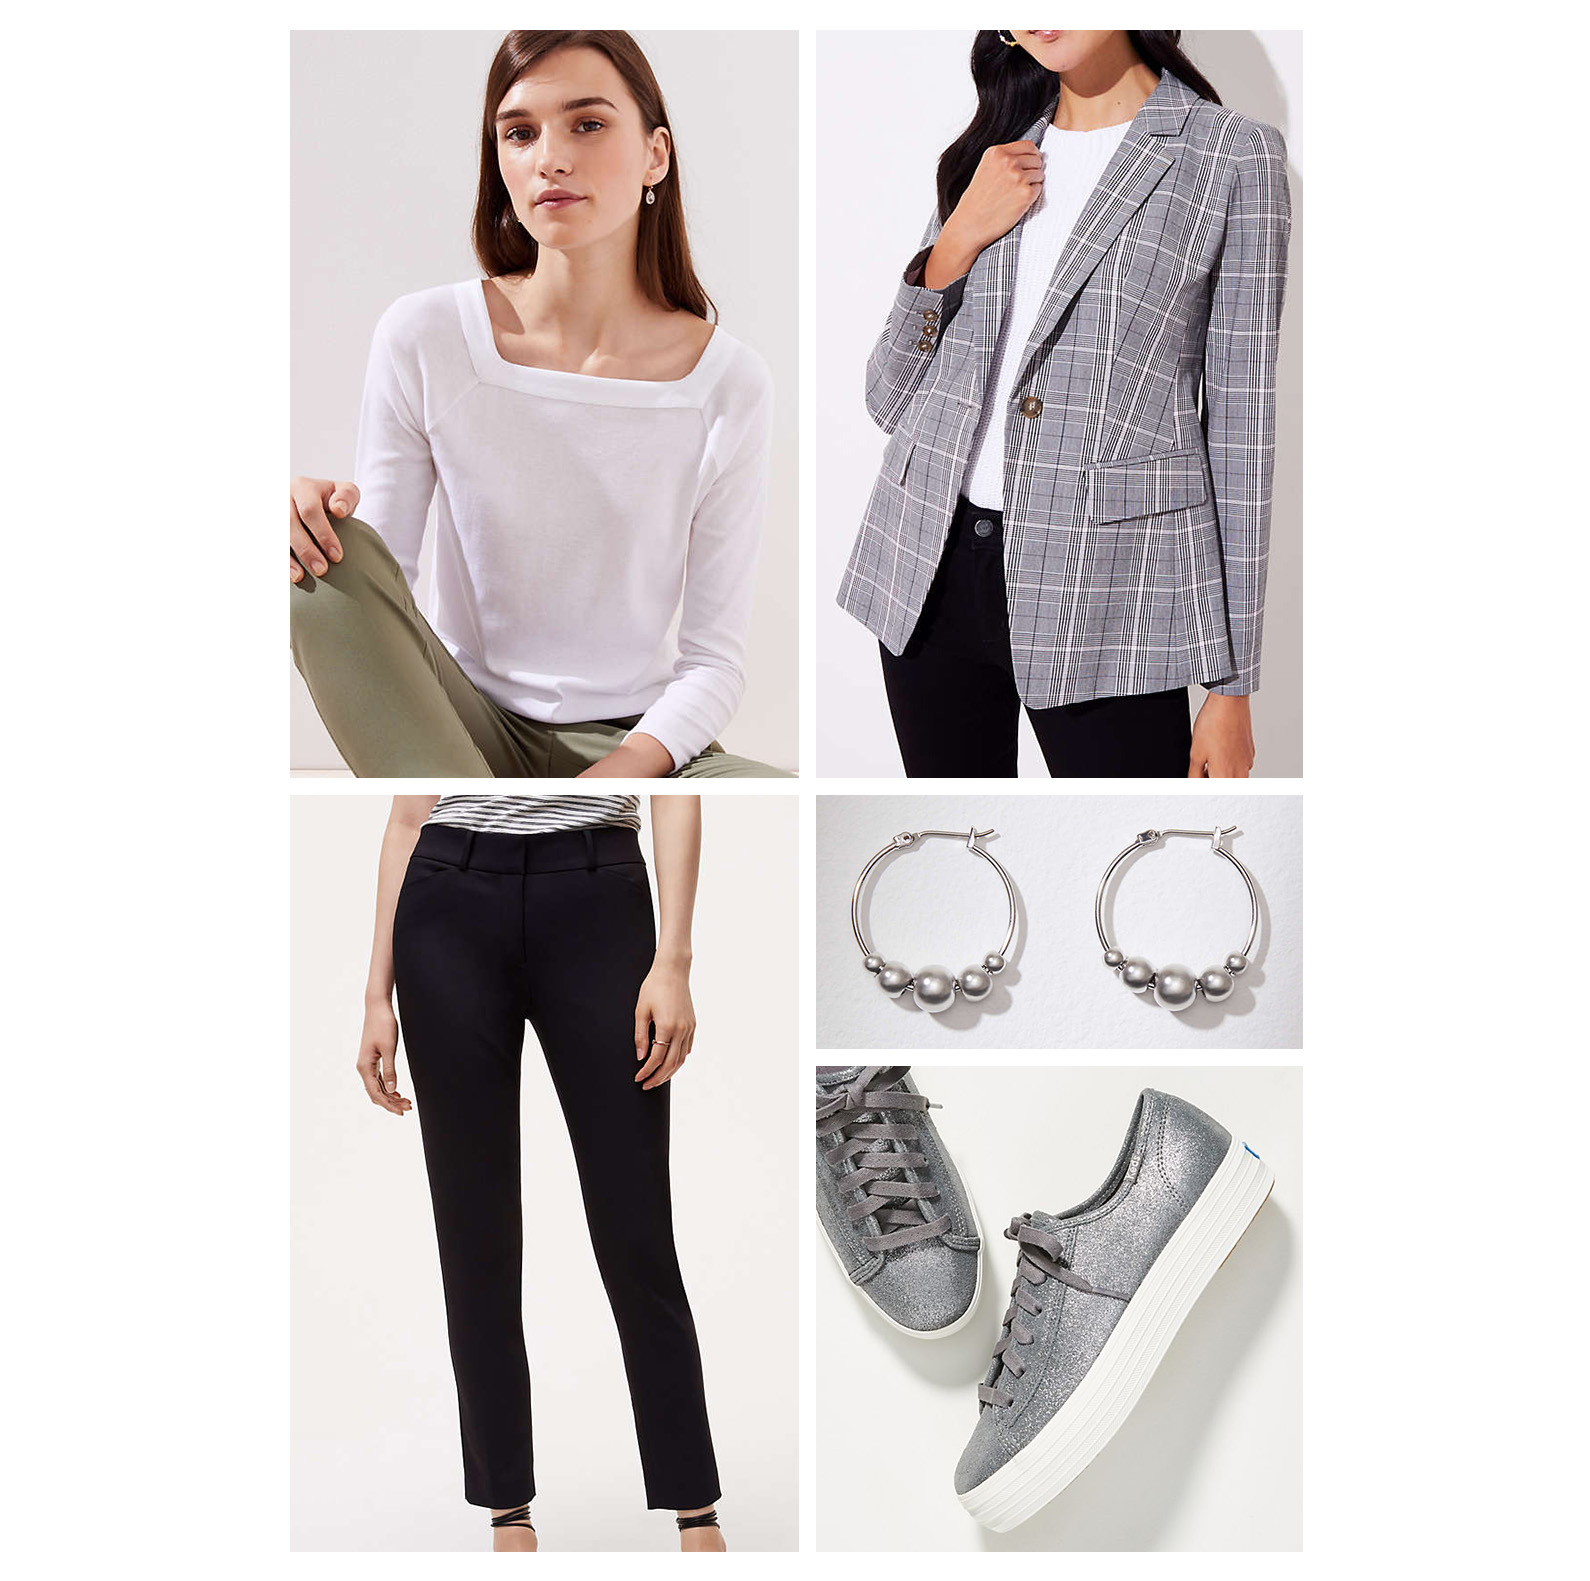 fall-autumn-outfit-work-2018-fashion-ideas-black-slim-pants-white-tee-gray-plaid-blazer-silver-metallic-sneakers-hoop-earrings-casualfriday-office.jpg